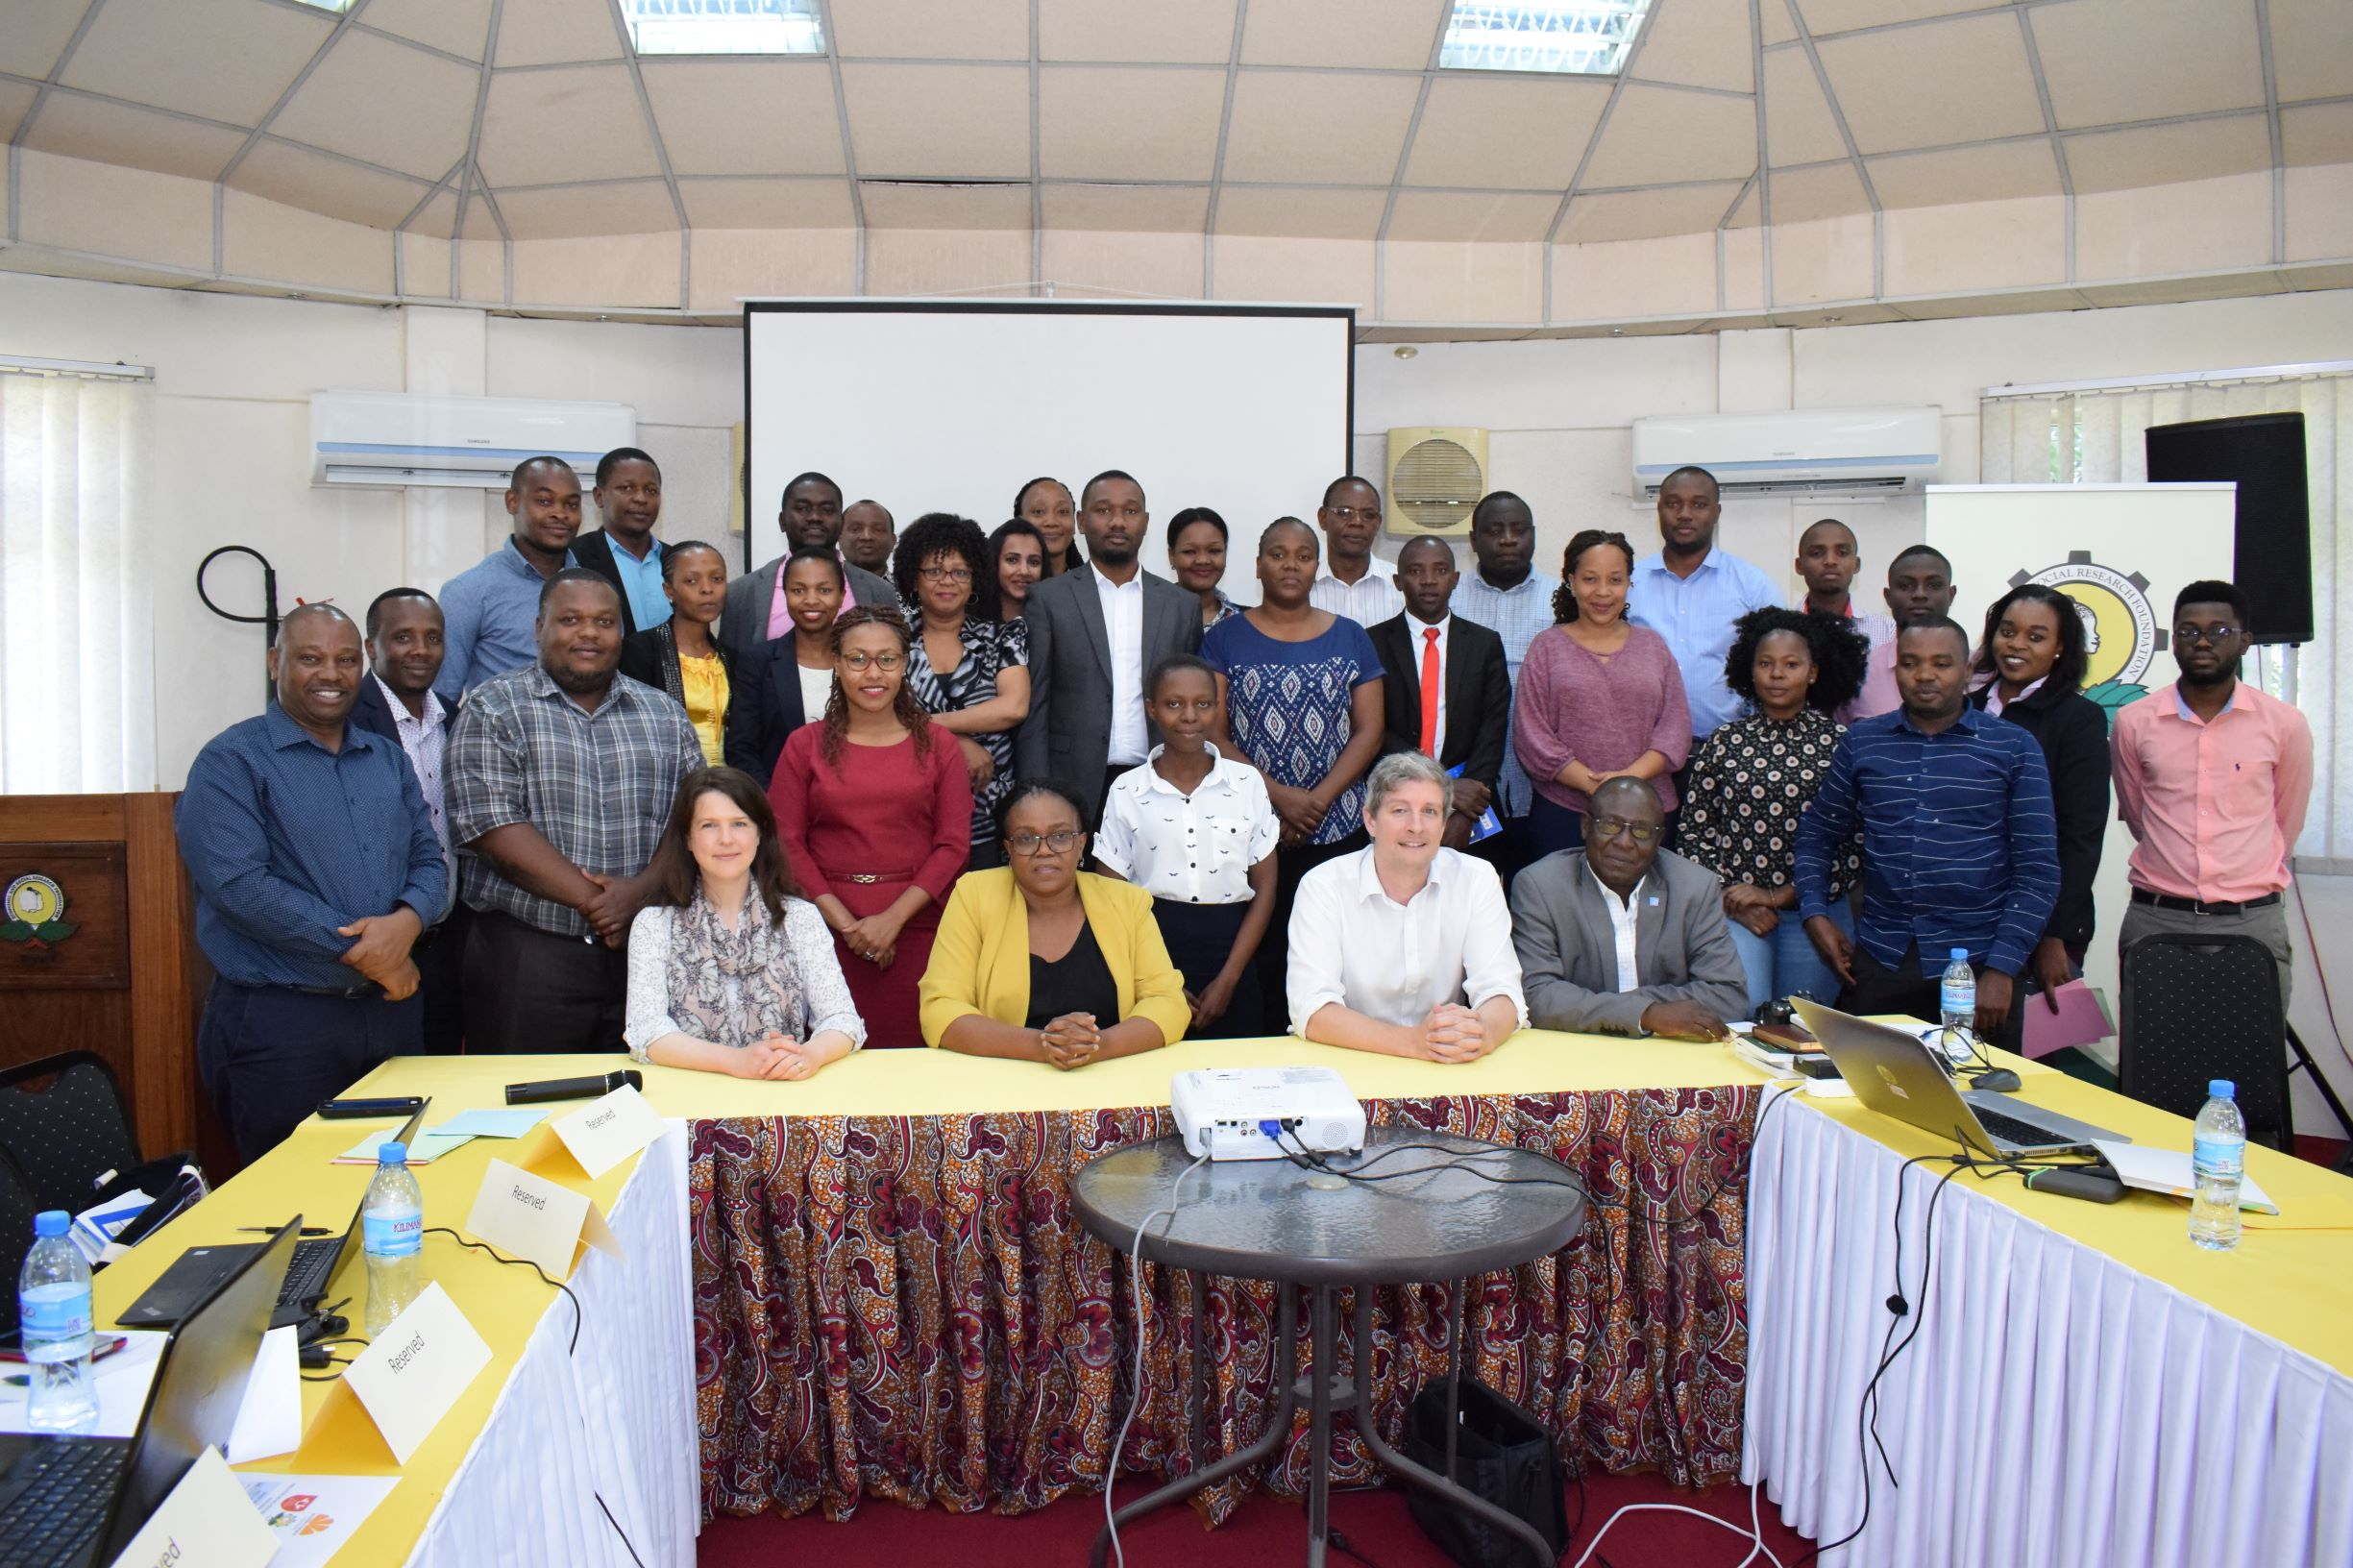 Stakeholders and IIAP team members at the Maize Stakeholder Workshop on 19th June, 2019.